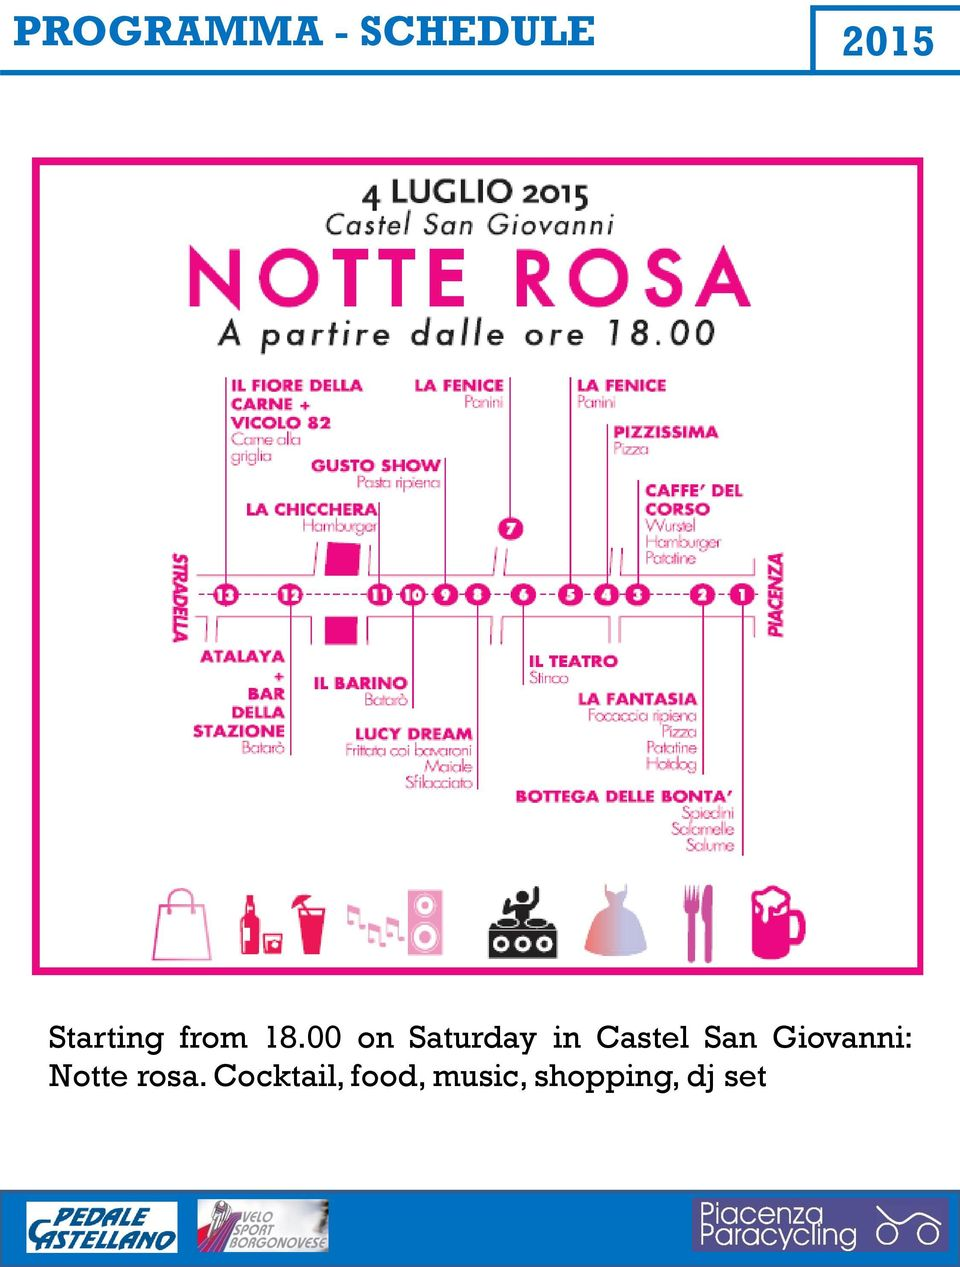 00 on Saturday in Castel San